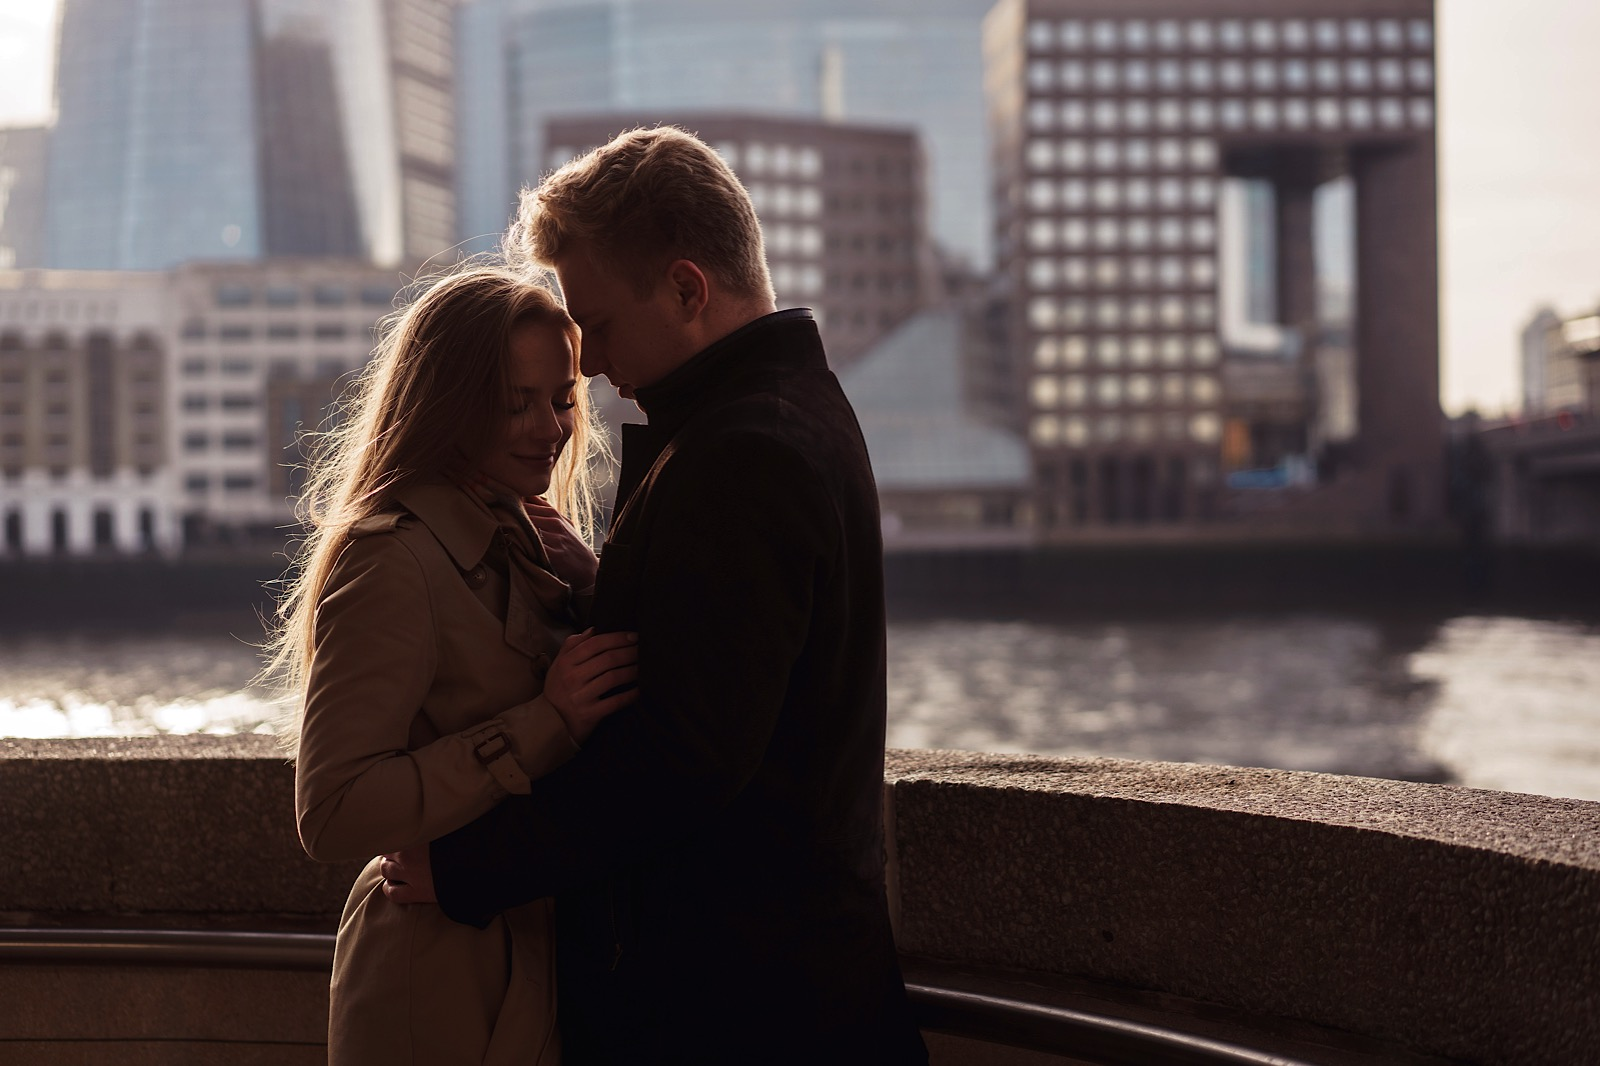 A couple hugging in a romantic way with the back drop of London